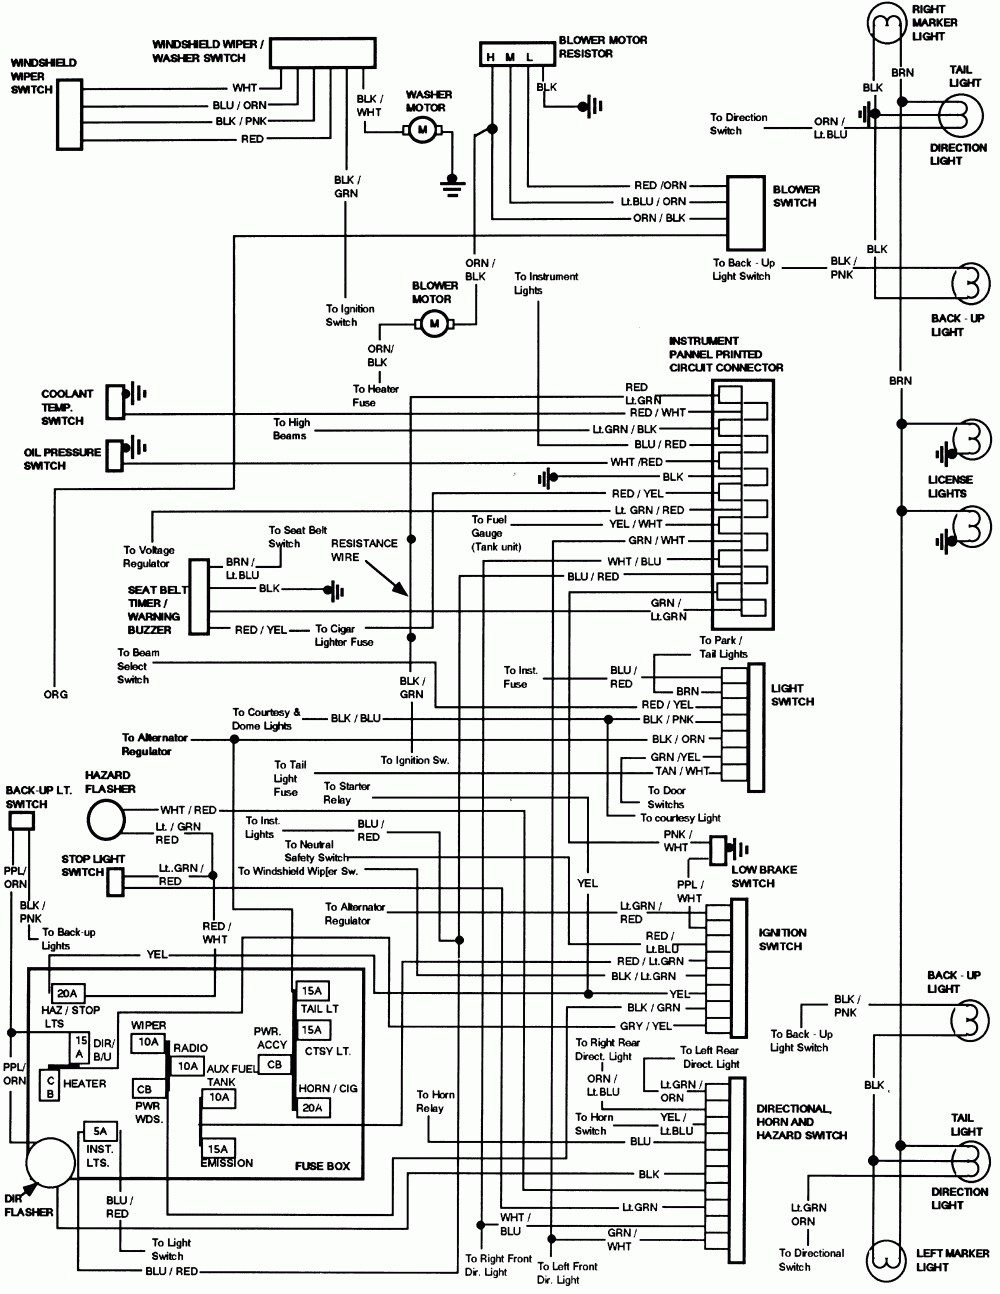 Velvac Mirror Wiring Diagram